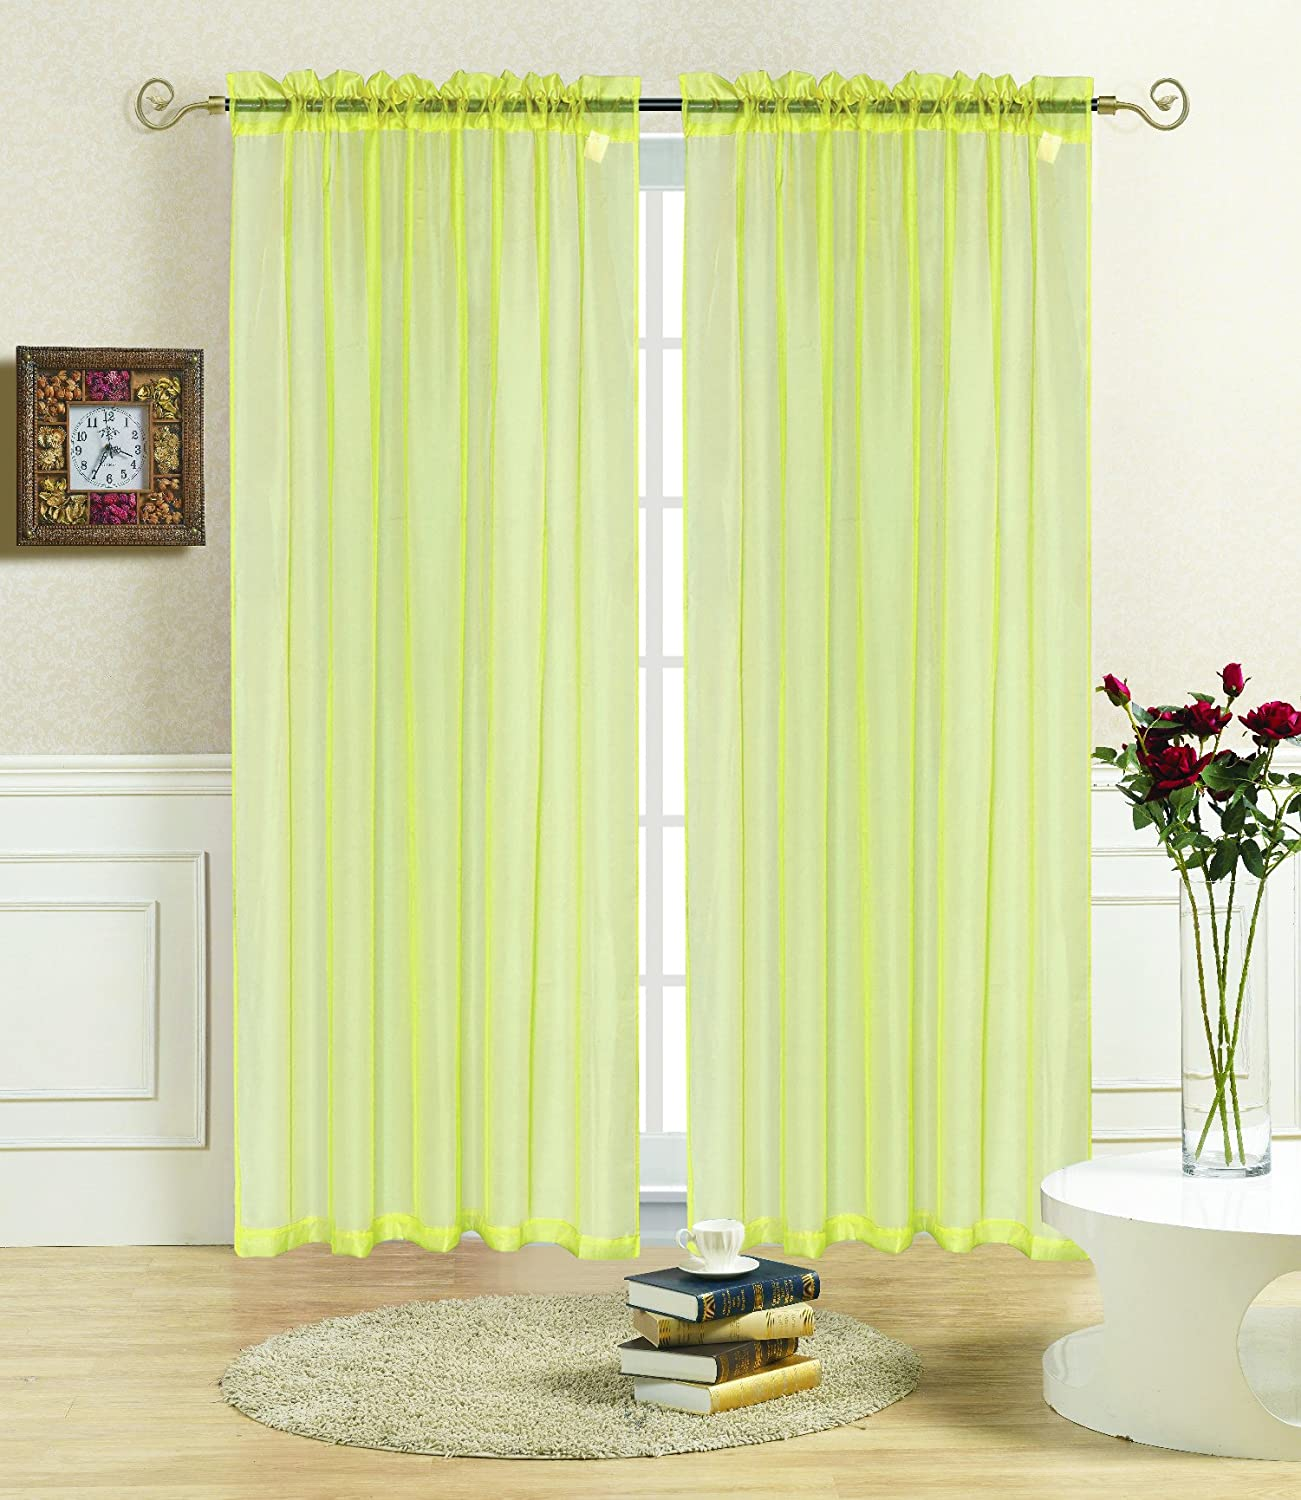 55 x 84 Kashi Home Rena 55X84 Sheer Voile Panel Curtain Beige